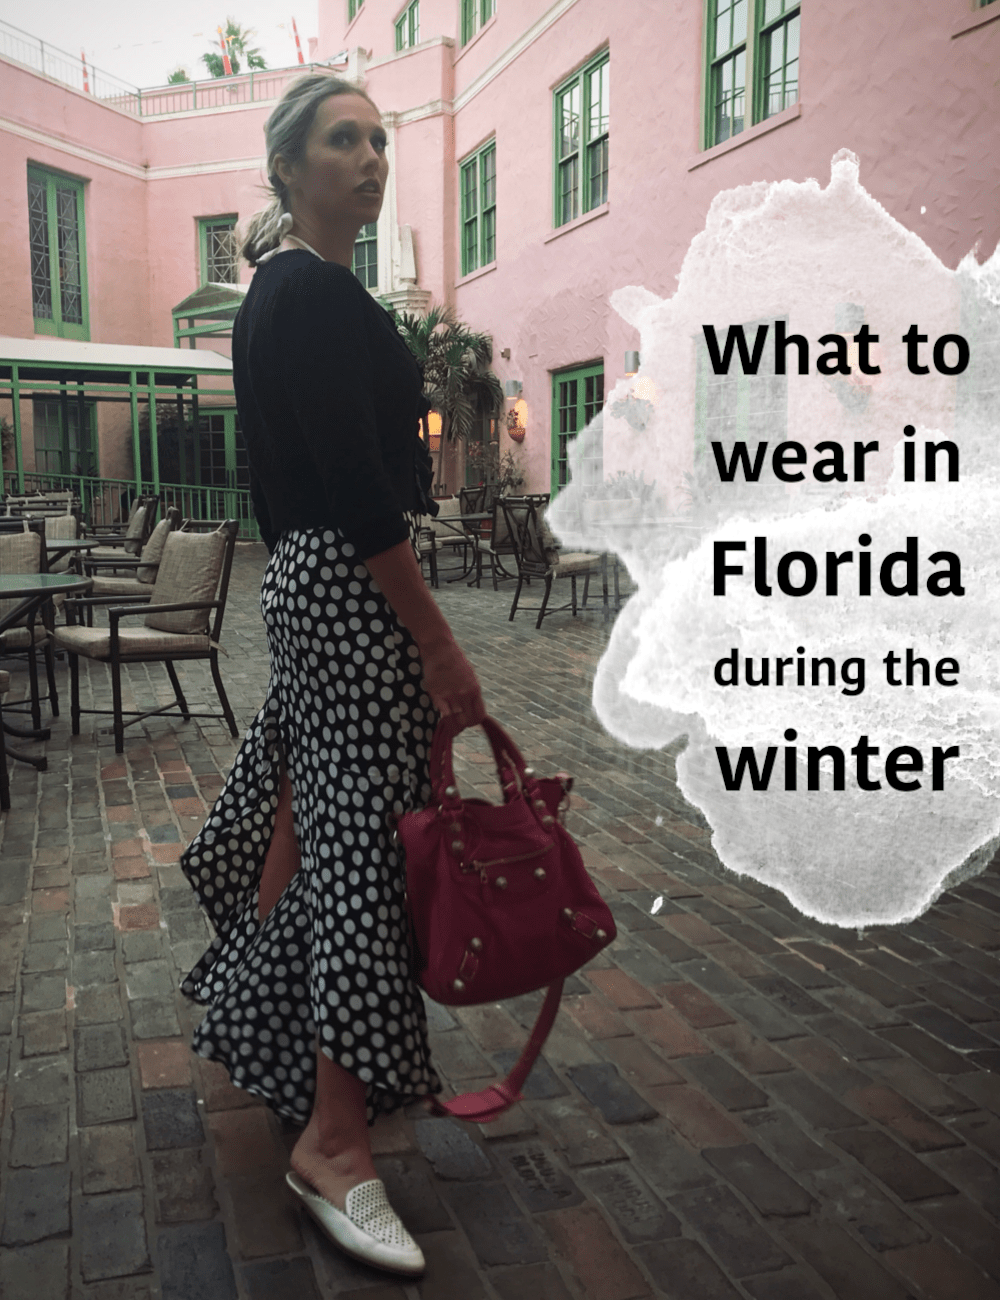 ab2ead8f6233 what to wear in florida during the winter - winter fashion and shopping  guide